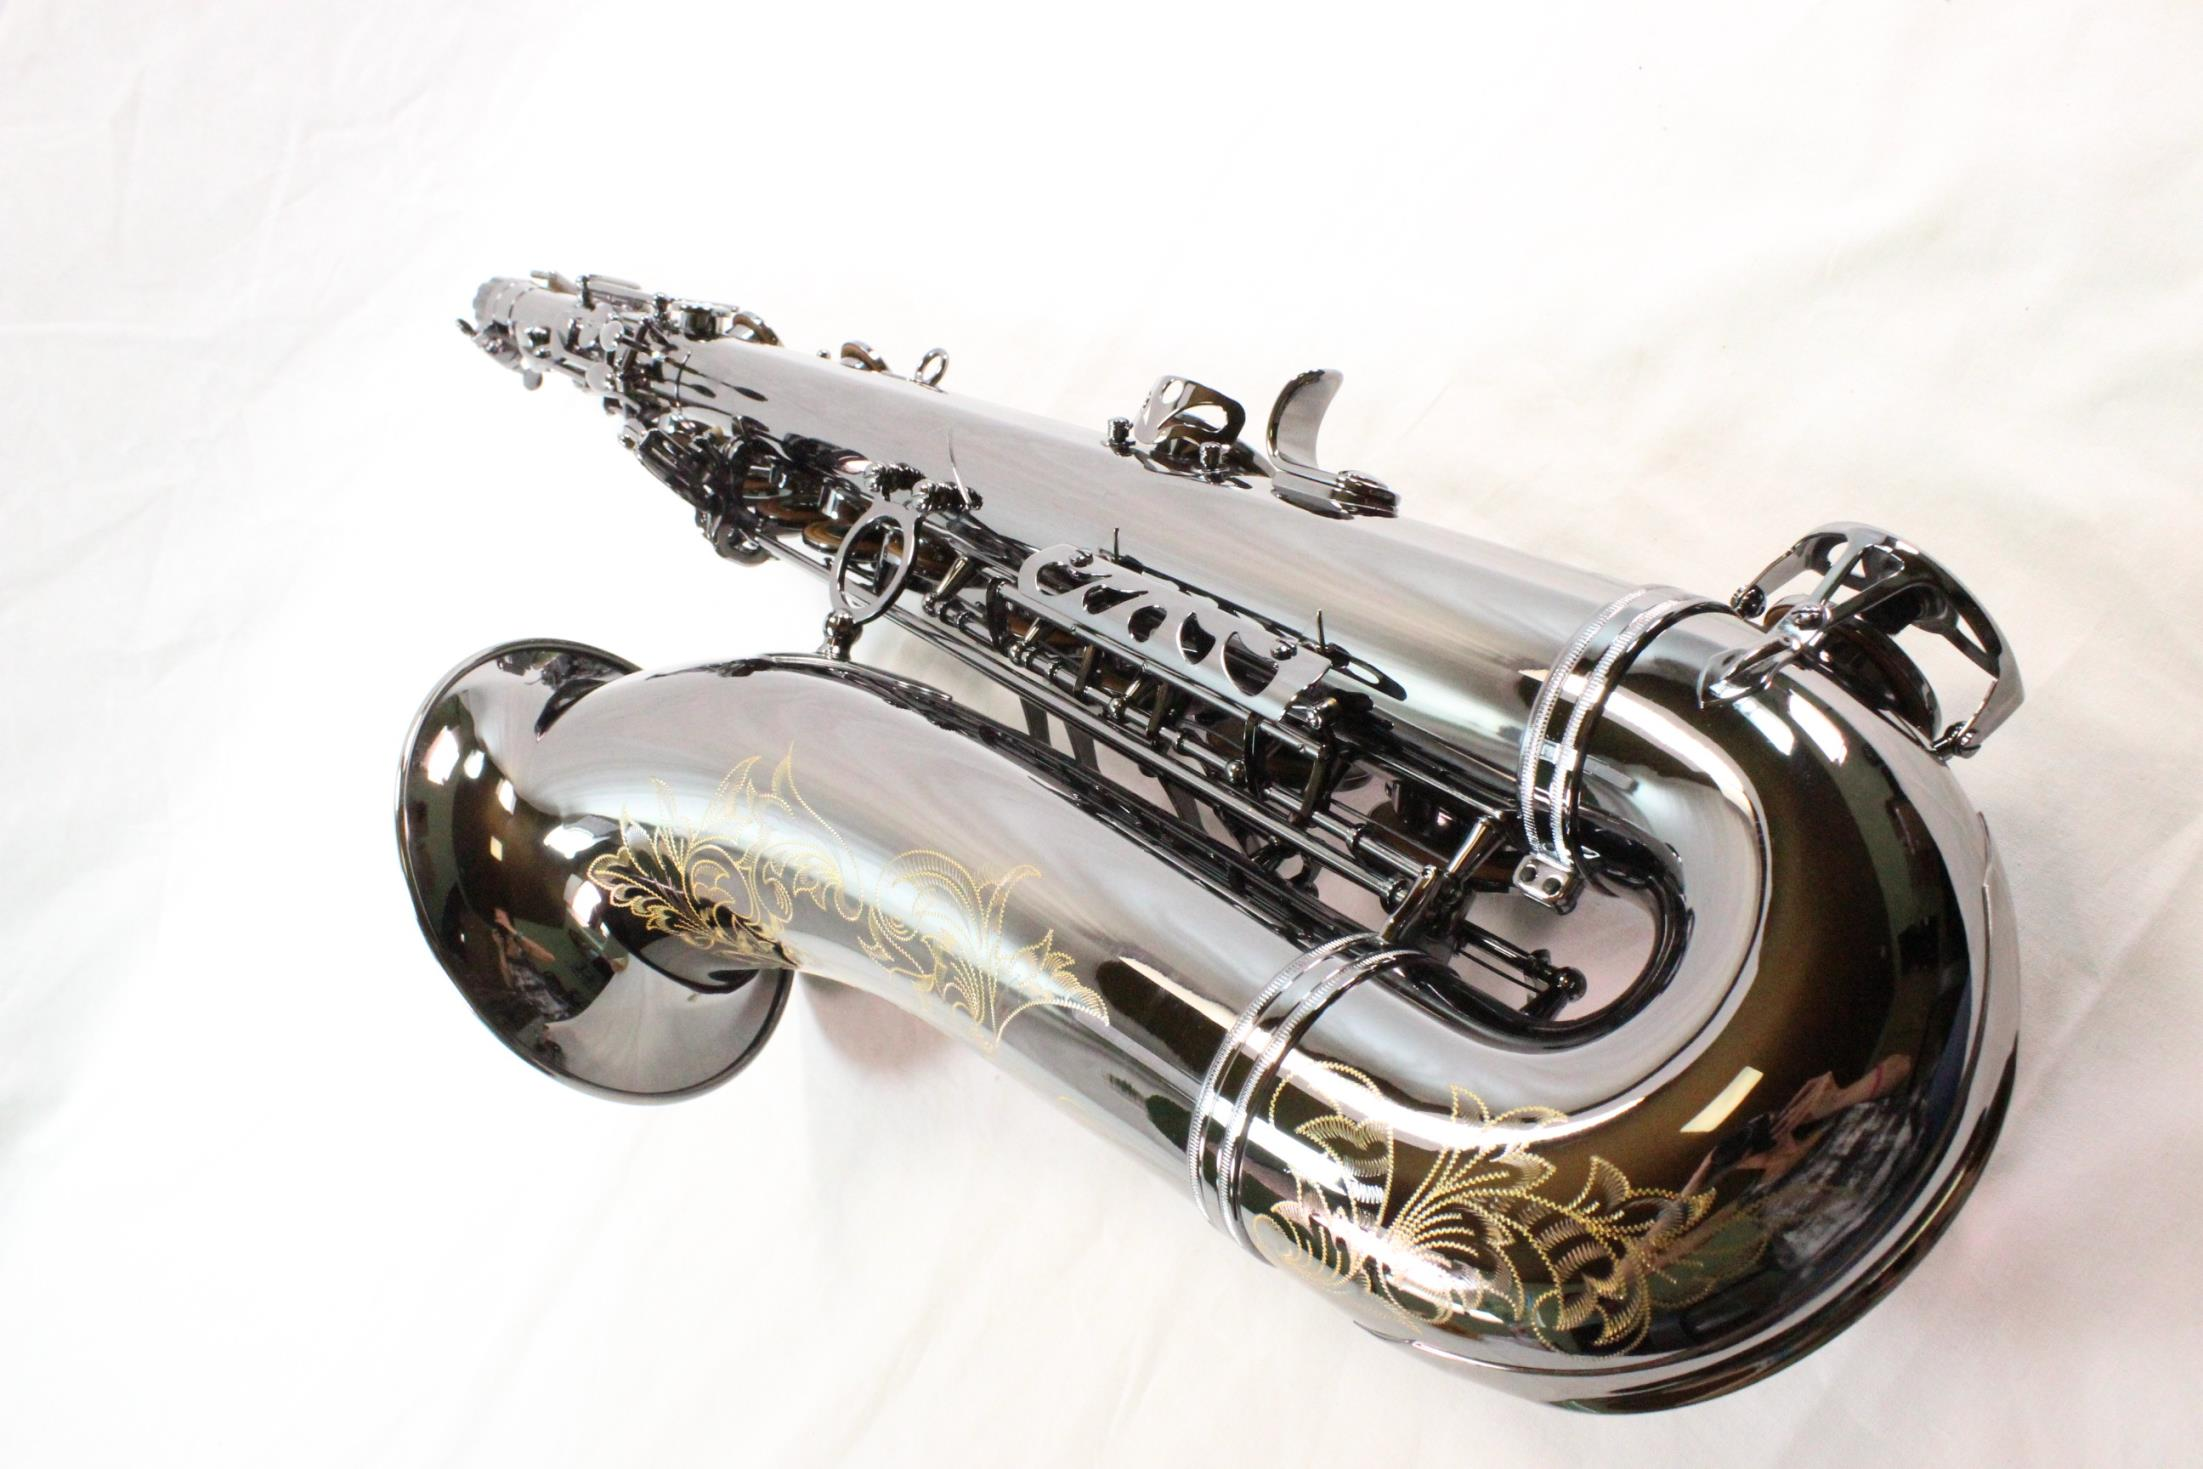 selmer soloist tenor saxophone black nickel finish mint quinnthe